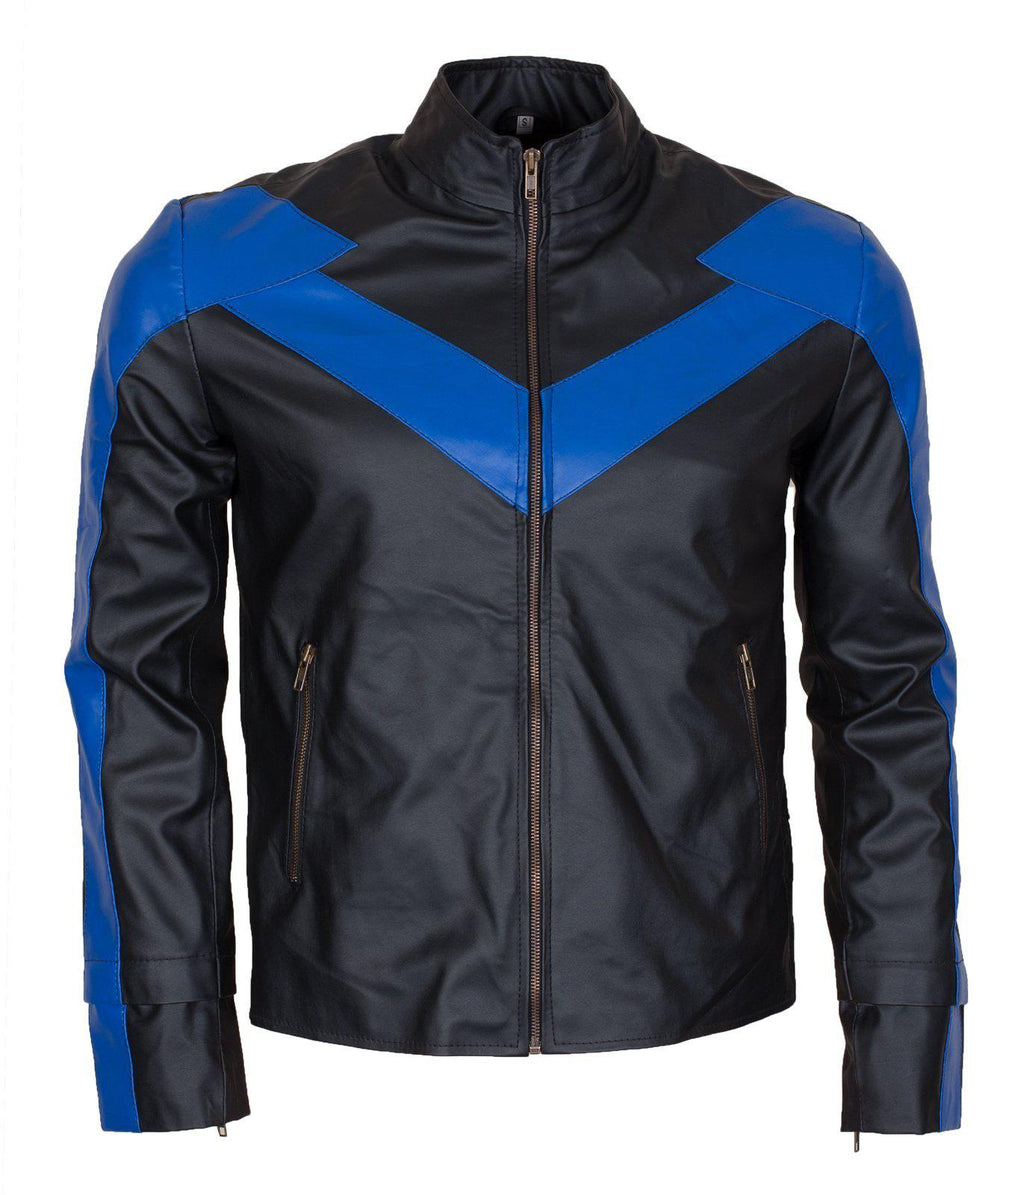 Nightwing Batman Jacket